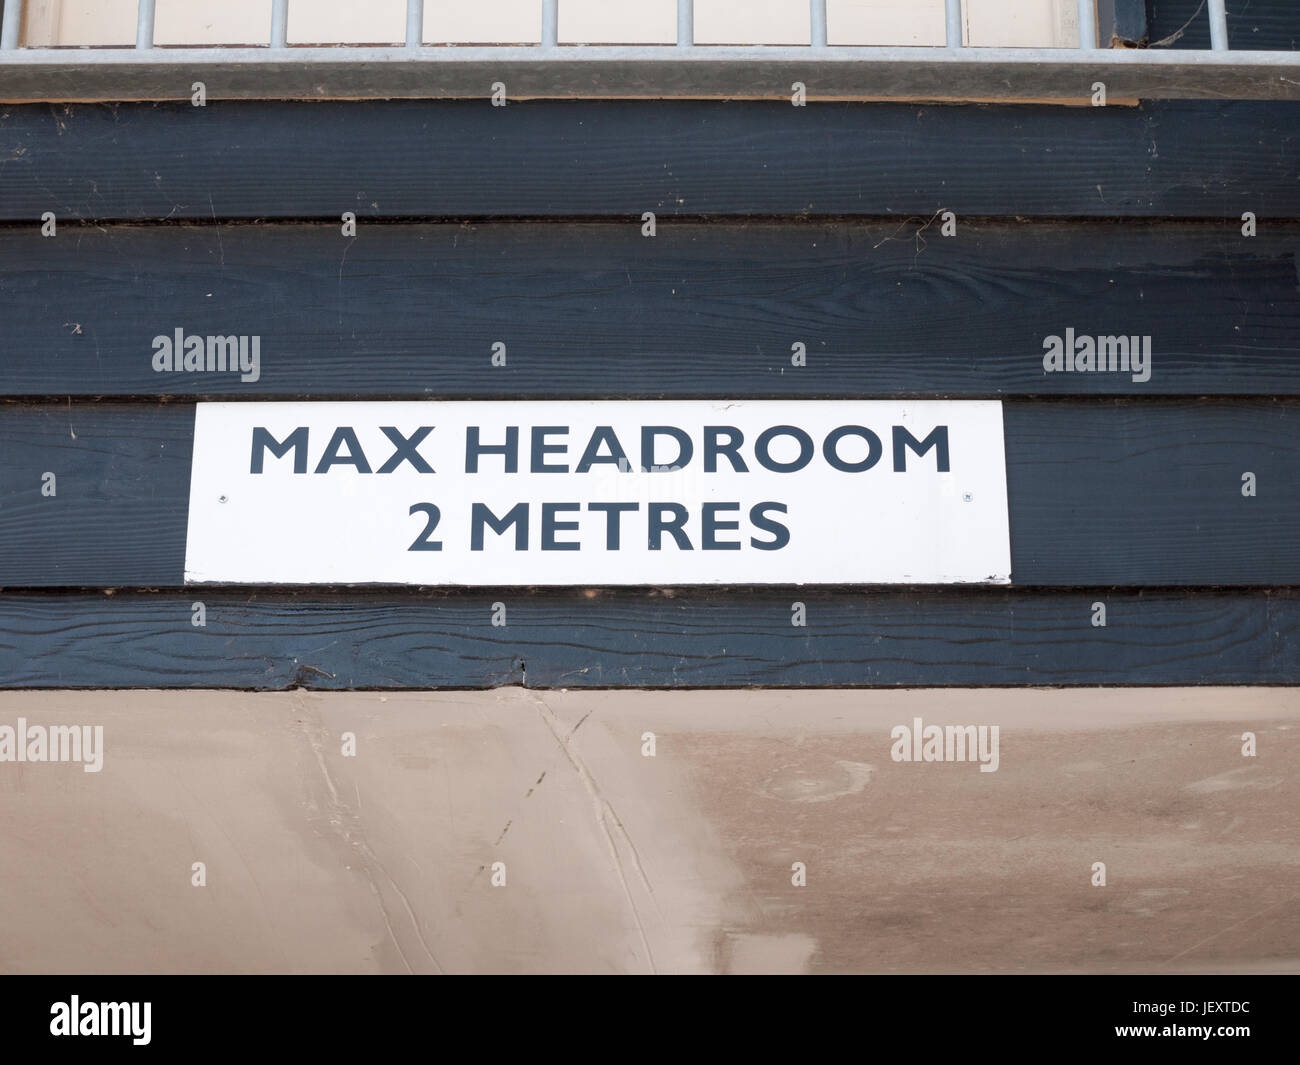 a white and black street sign saying max headroom 2 metres above overhead - Stock Image